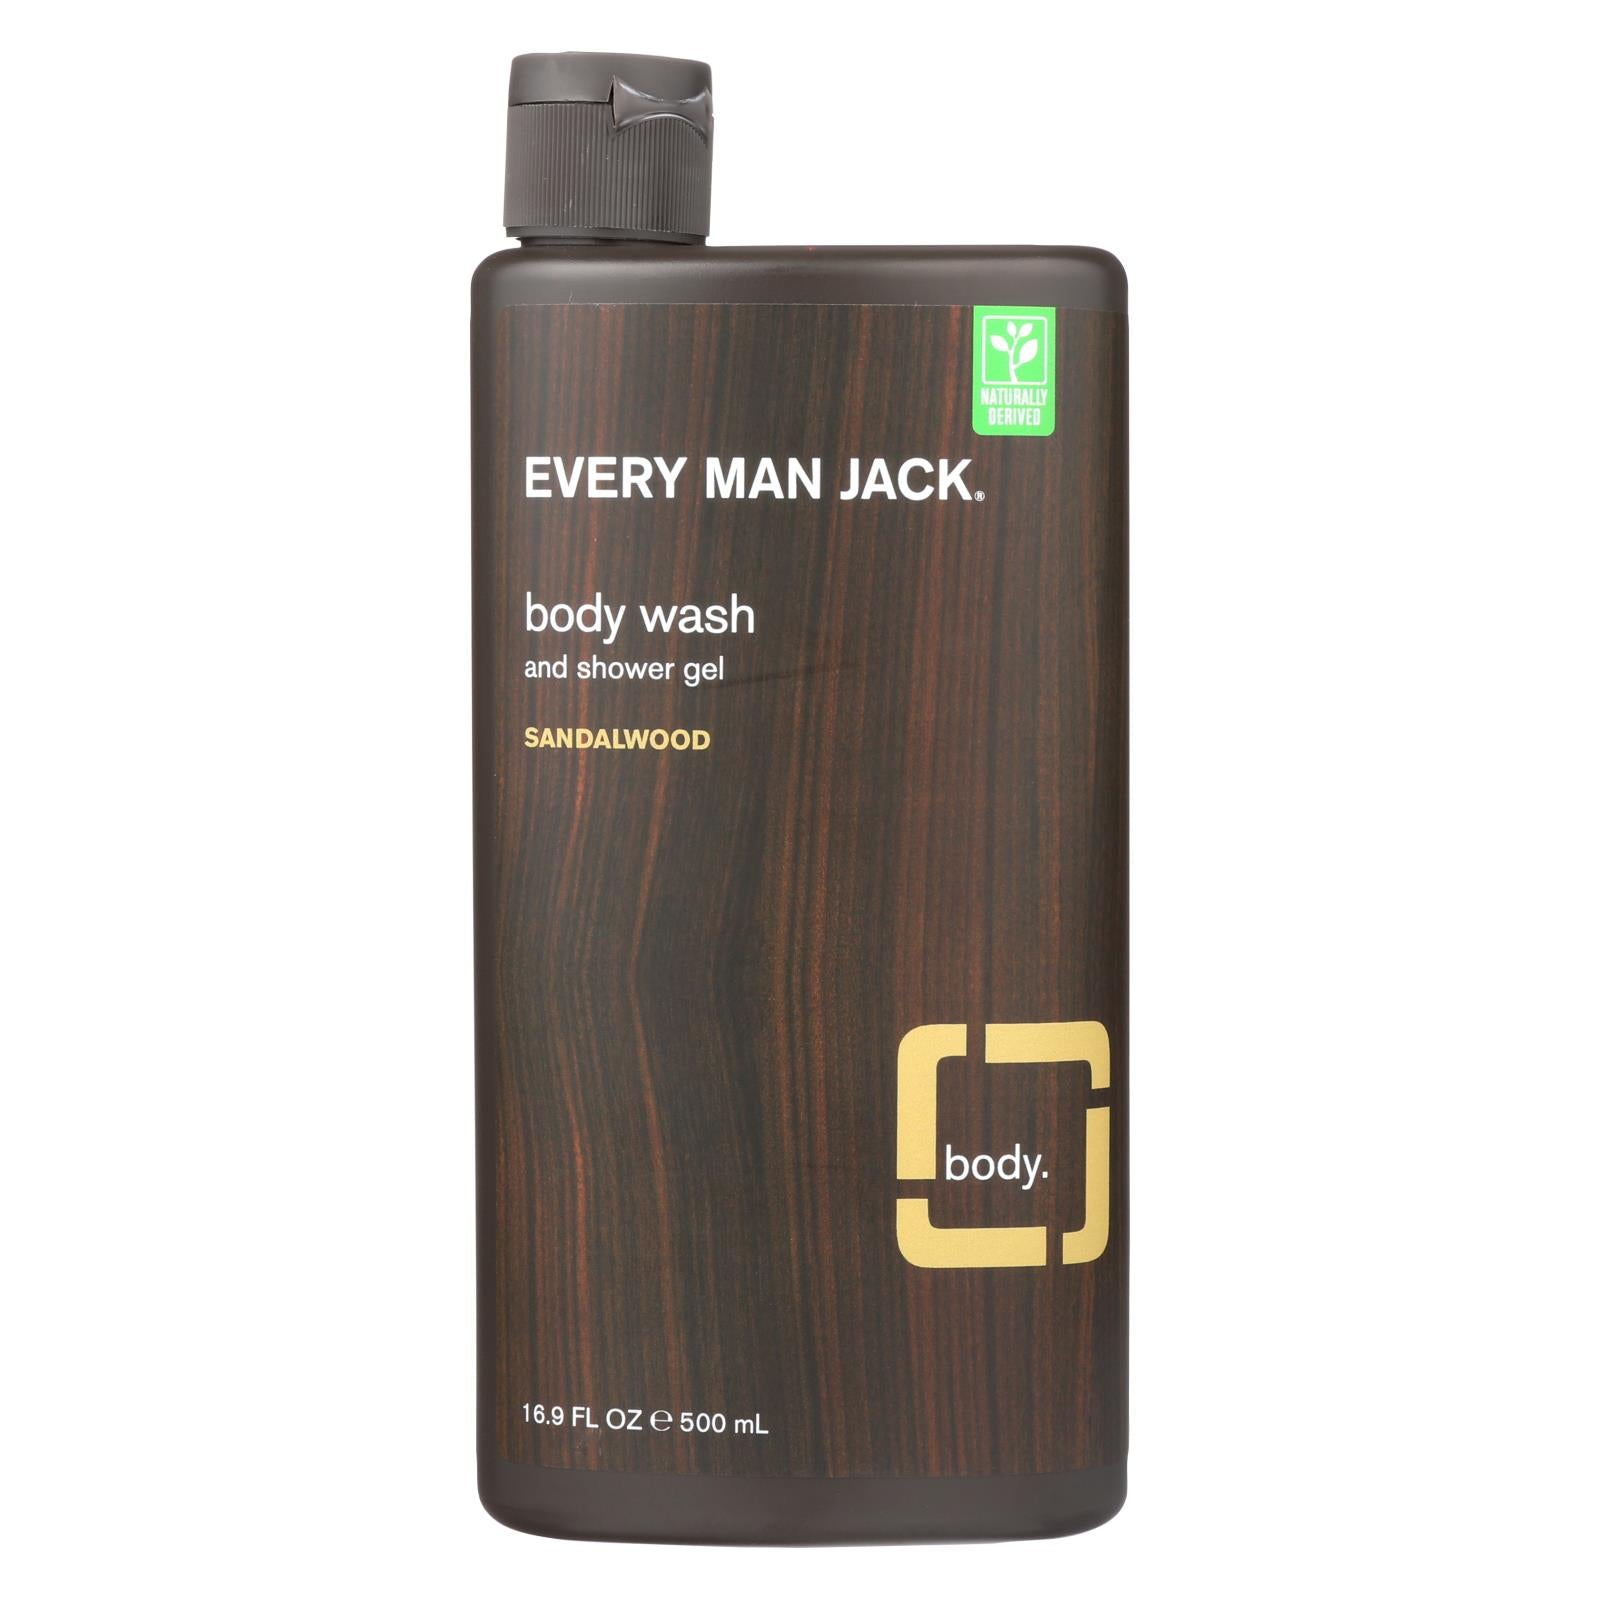 Every Man Jack Body Wash Sandalwood - Case Of 16.9 - 16.9 Fl Oz. from EVERY MAN JACK